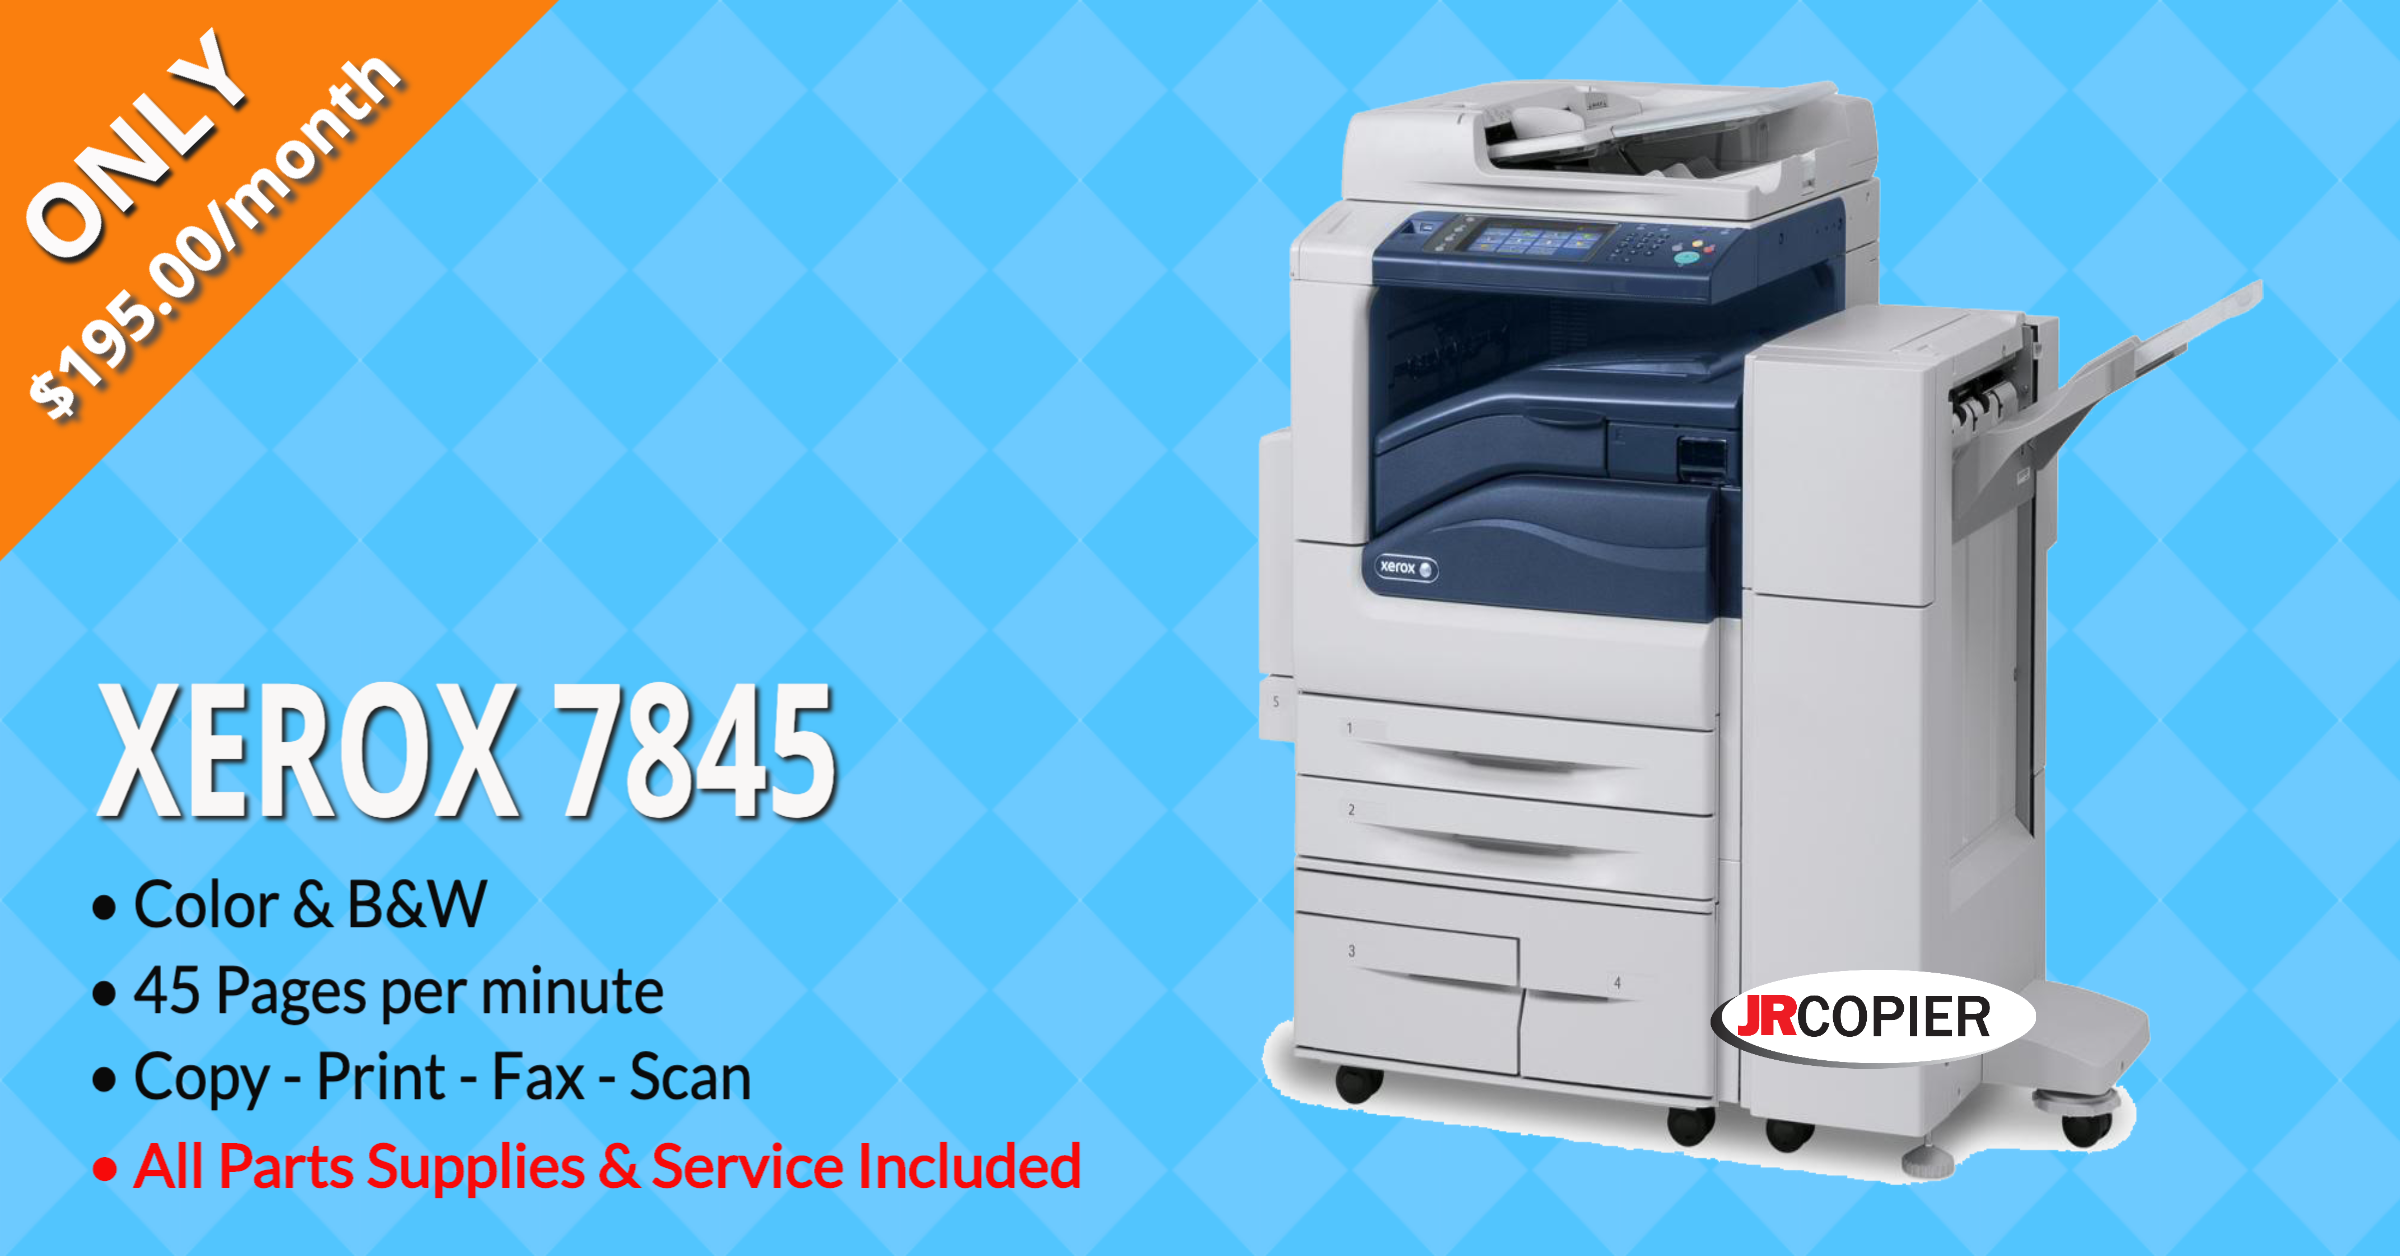 Copy Machine 21022, 21093, 21094